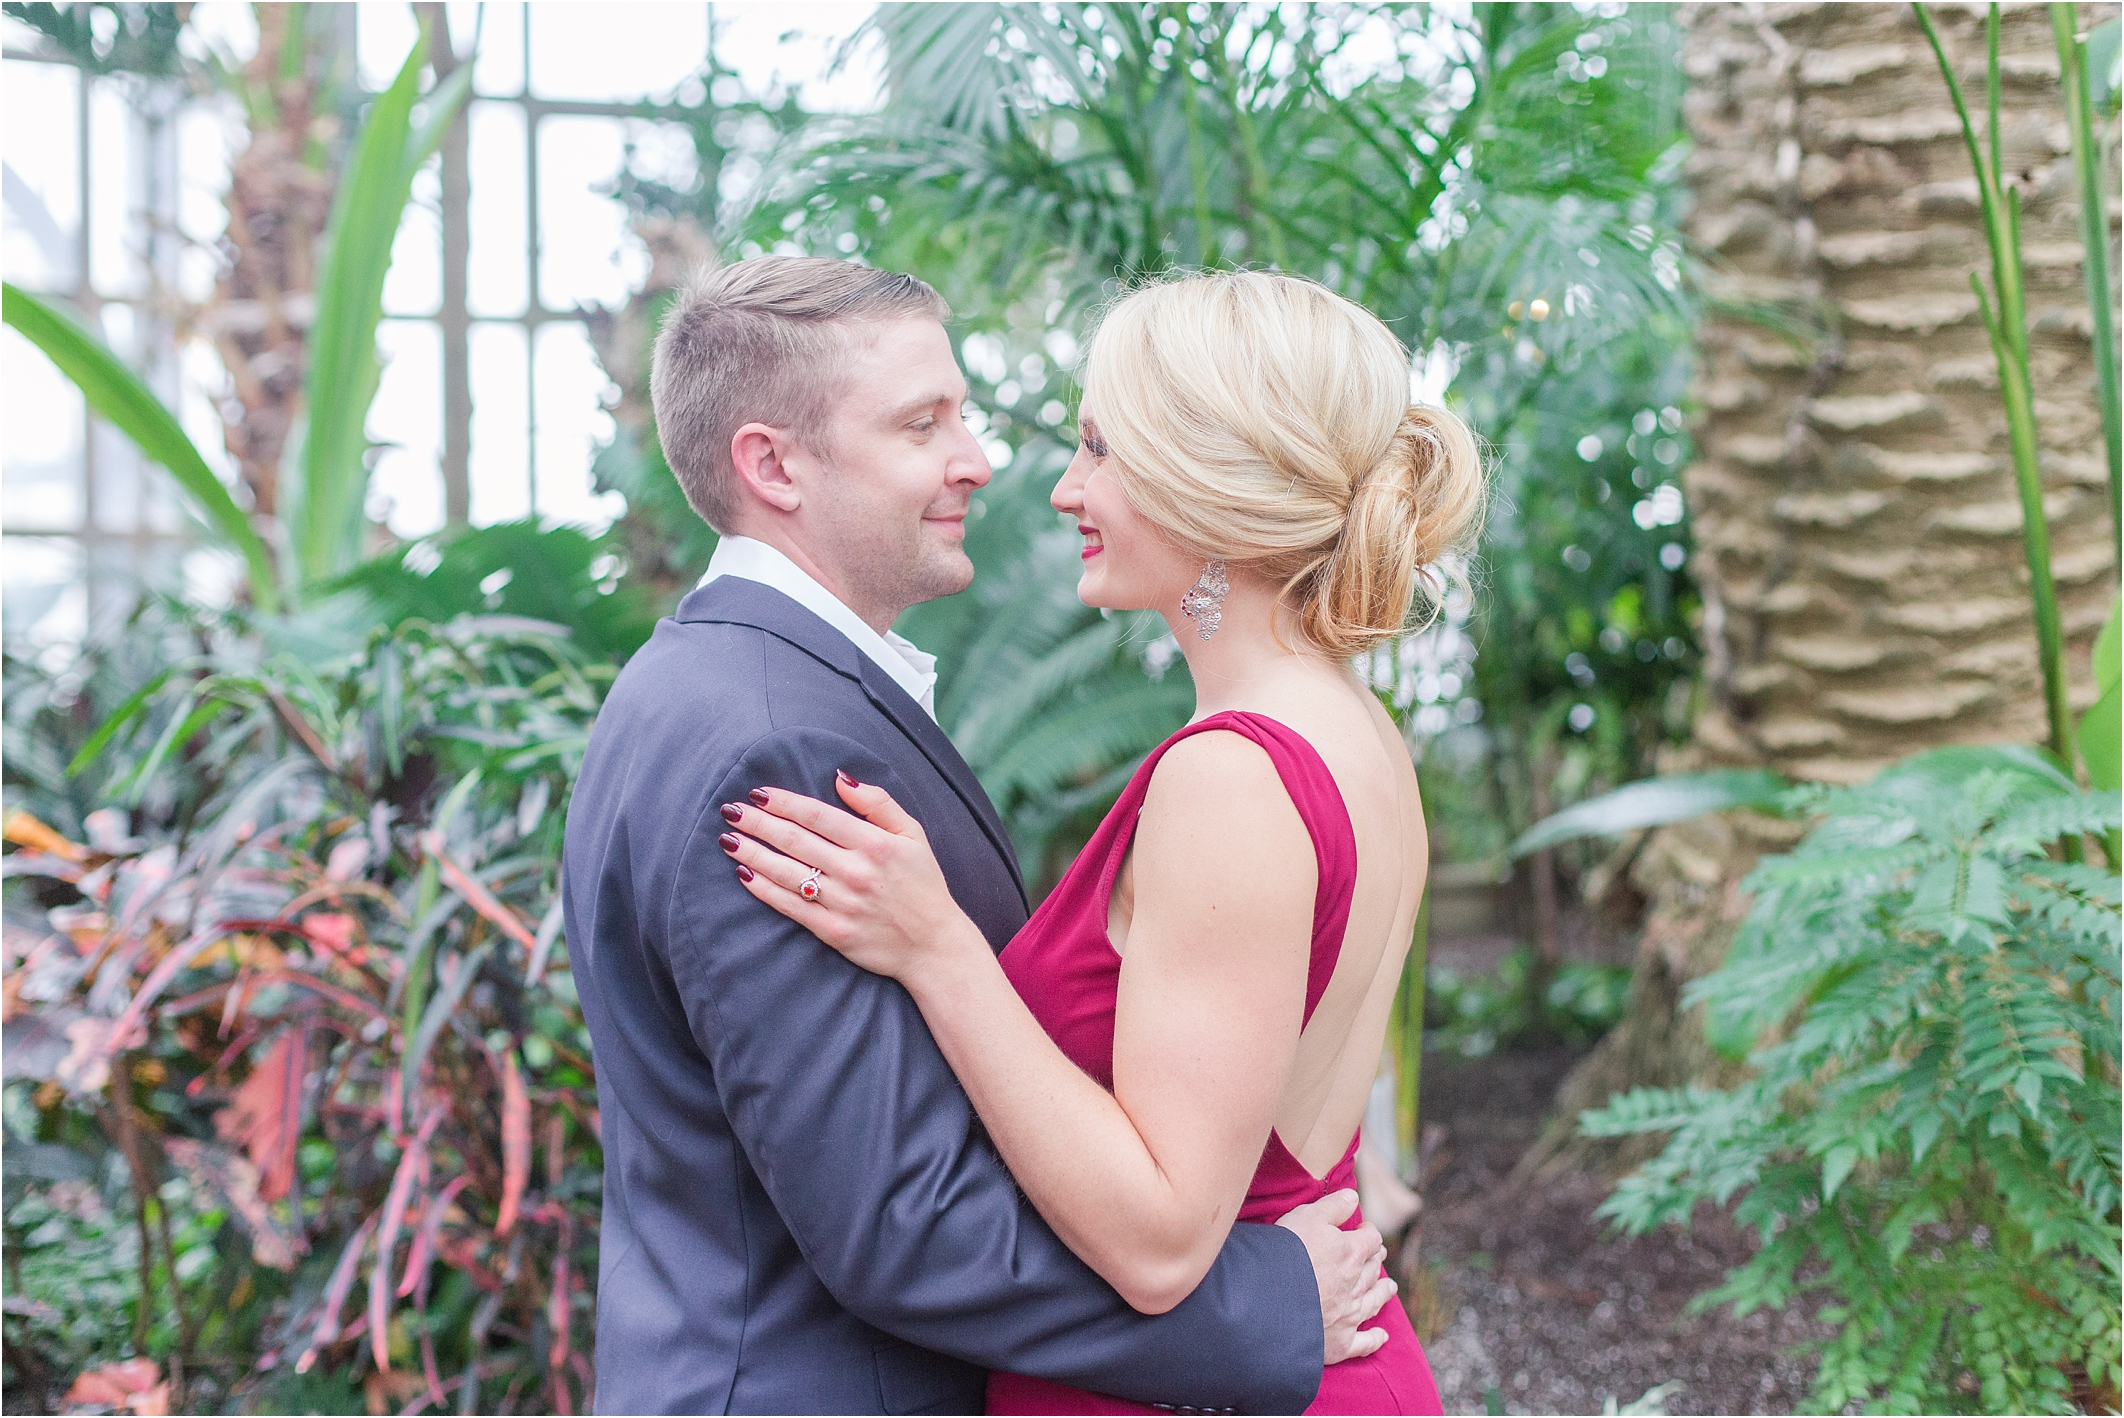 elegant-classic-belle-isle-conservatory-engagement-photos-in-detroit-mi-by-courtney-carolyn-photography_0013.jpg